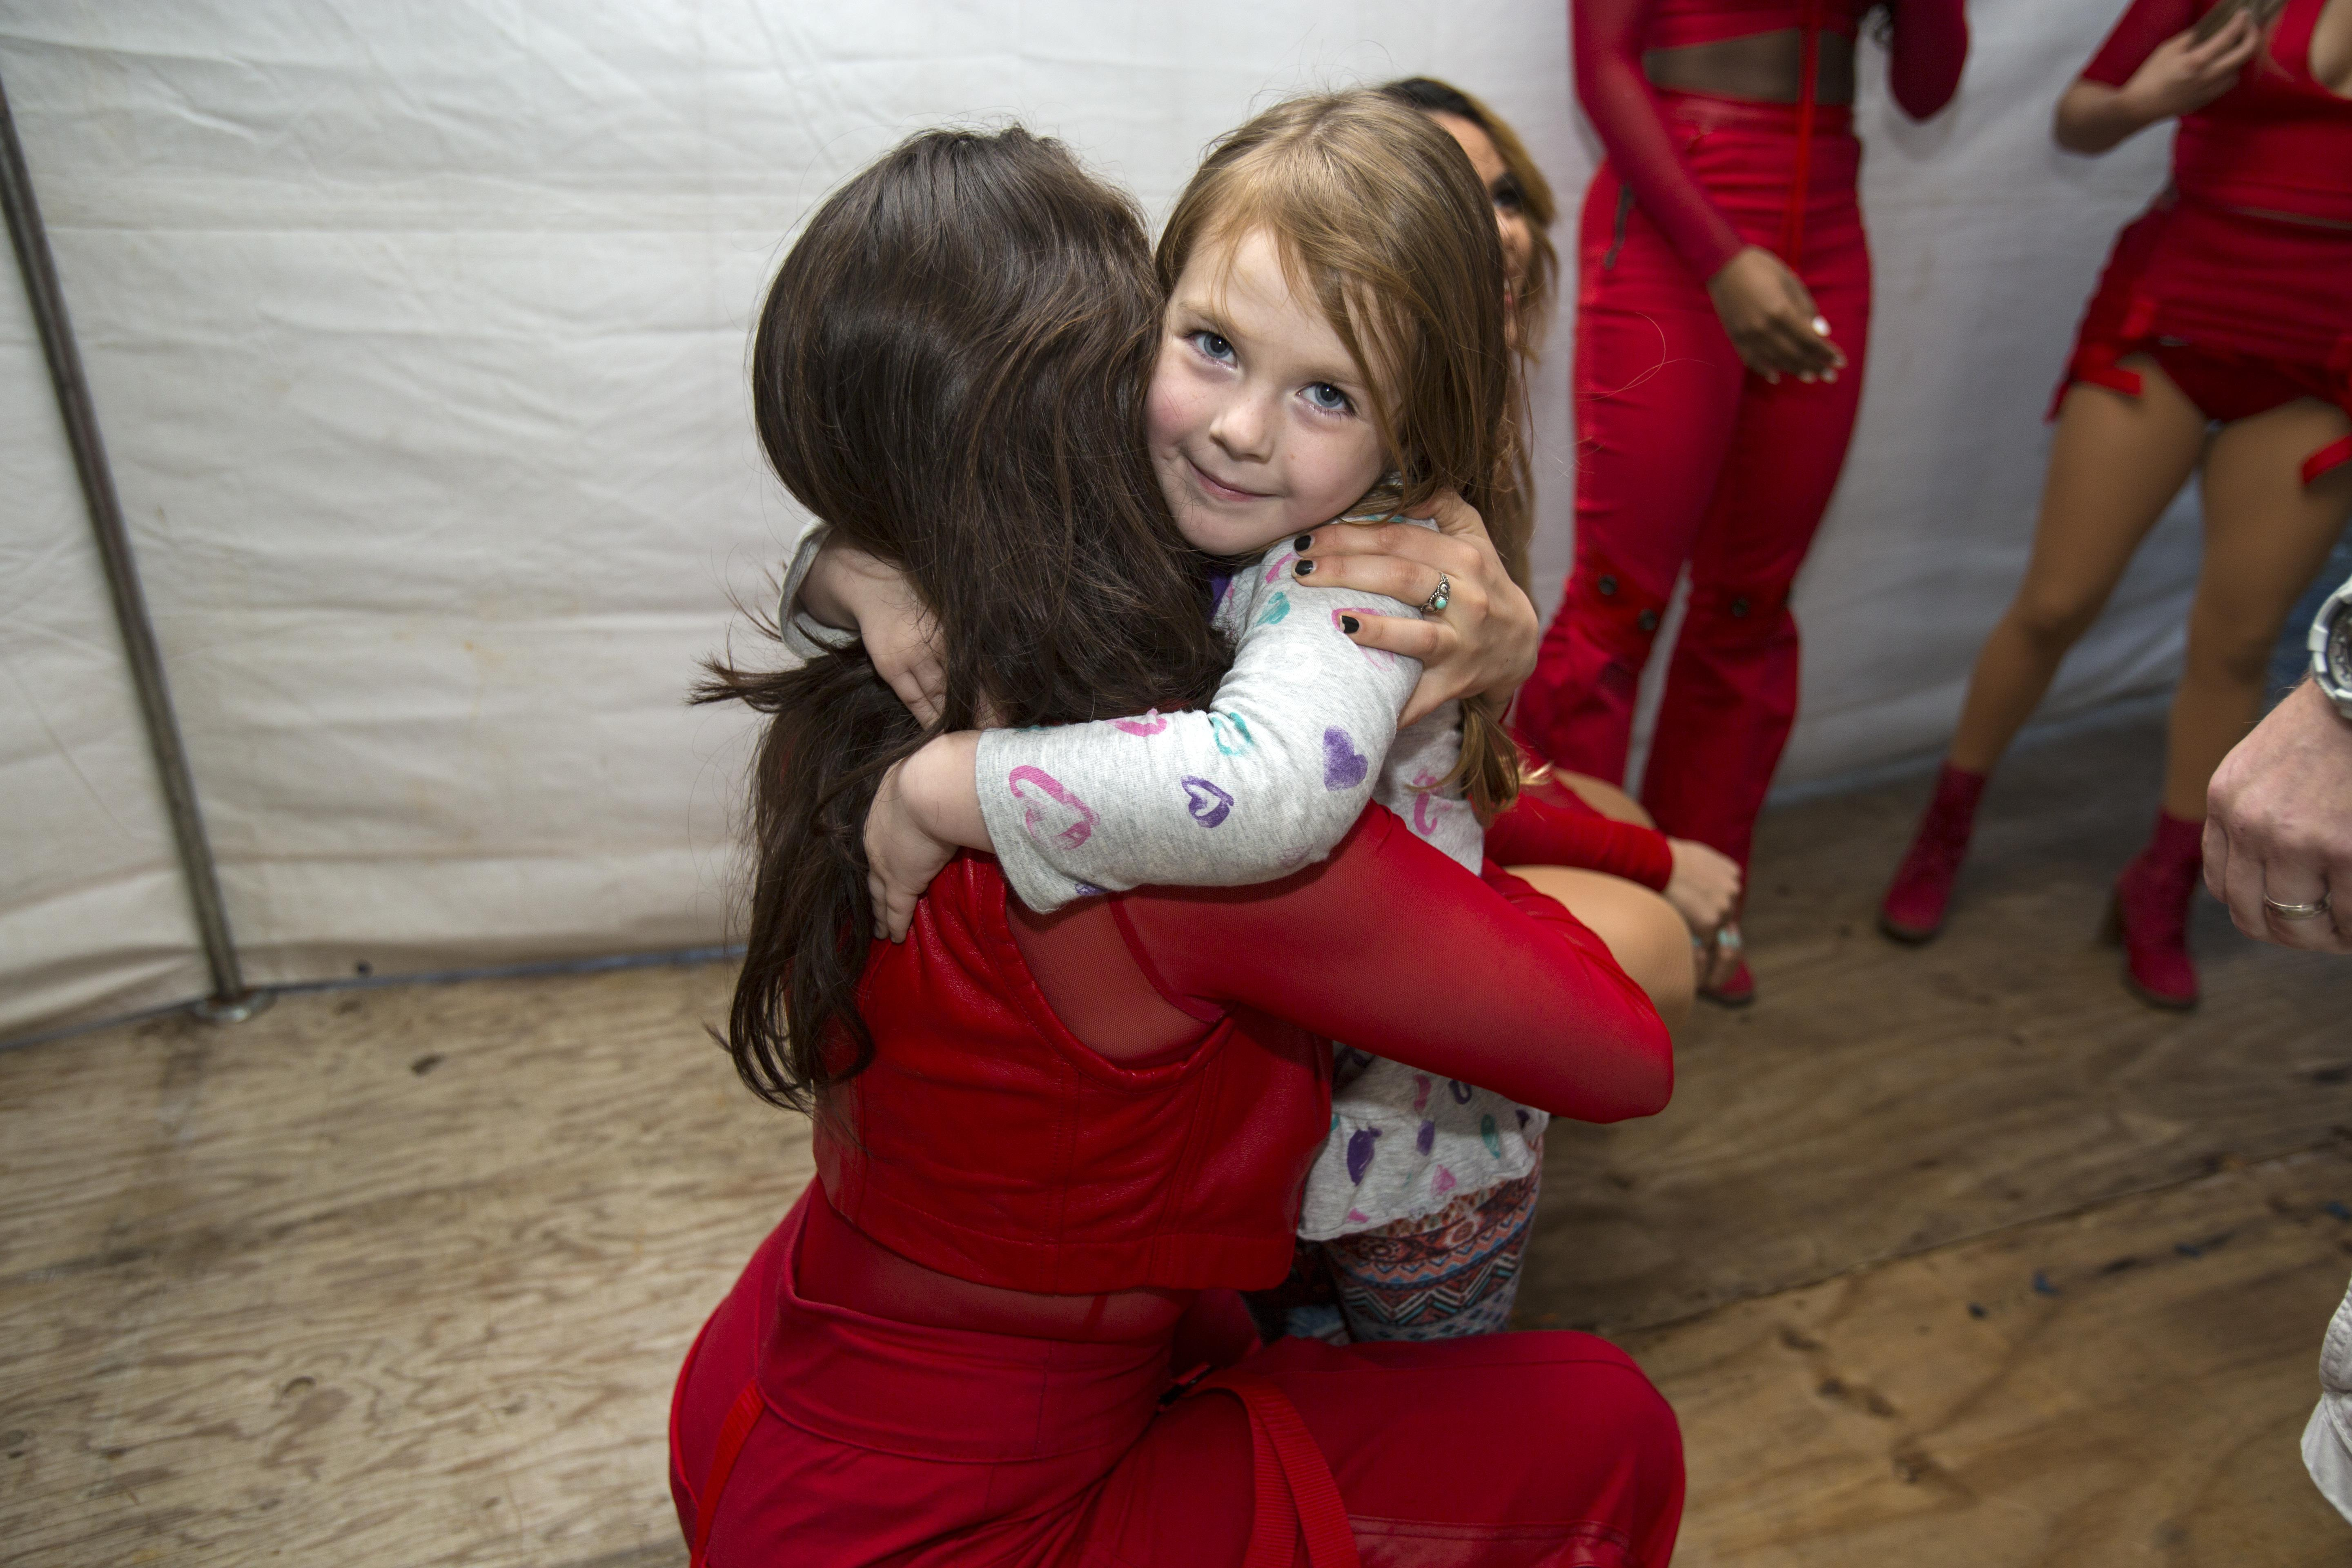 Photos fifth harmony member lauren jauregui hugs a young fan during a meet and greet kristyandbryce Image collections